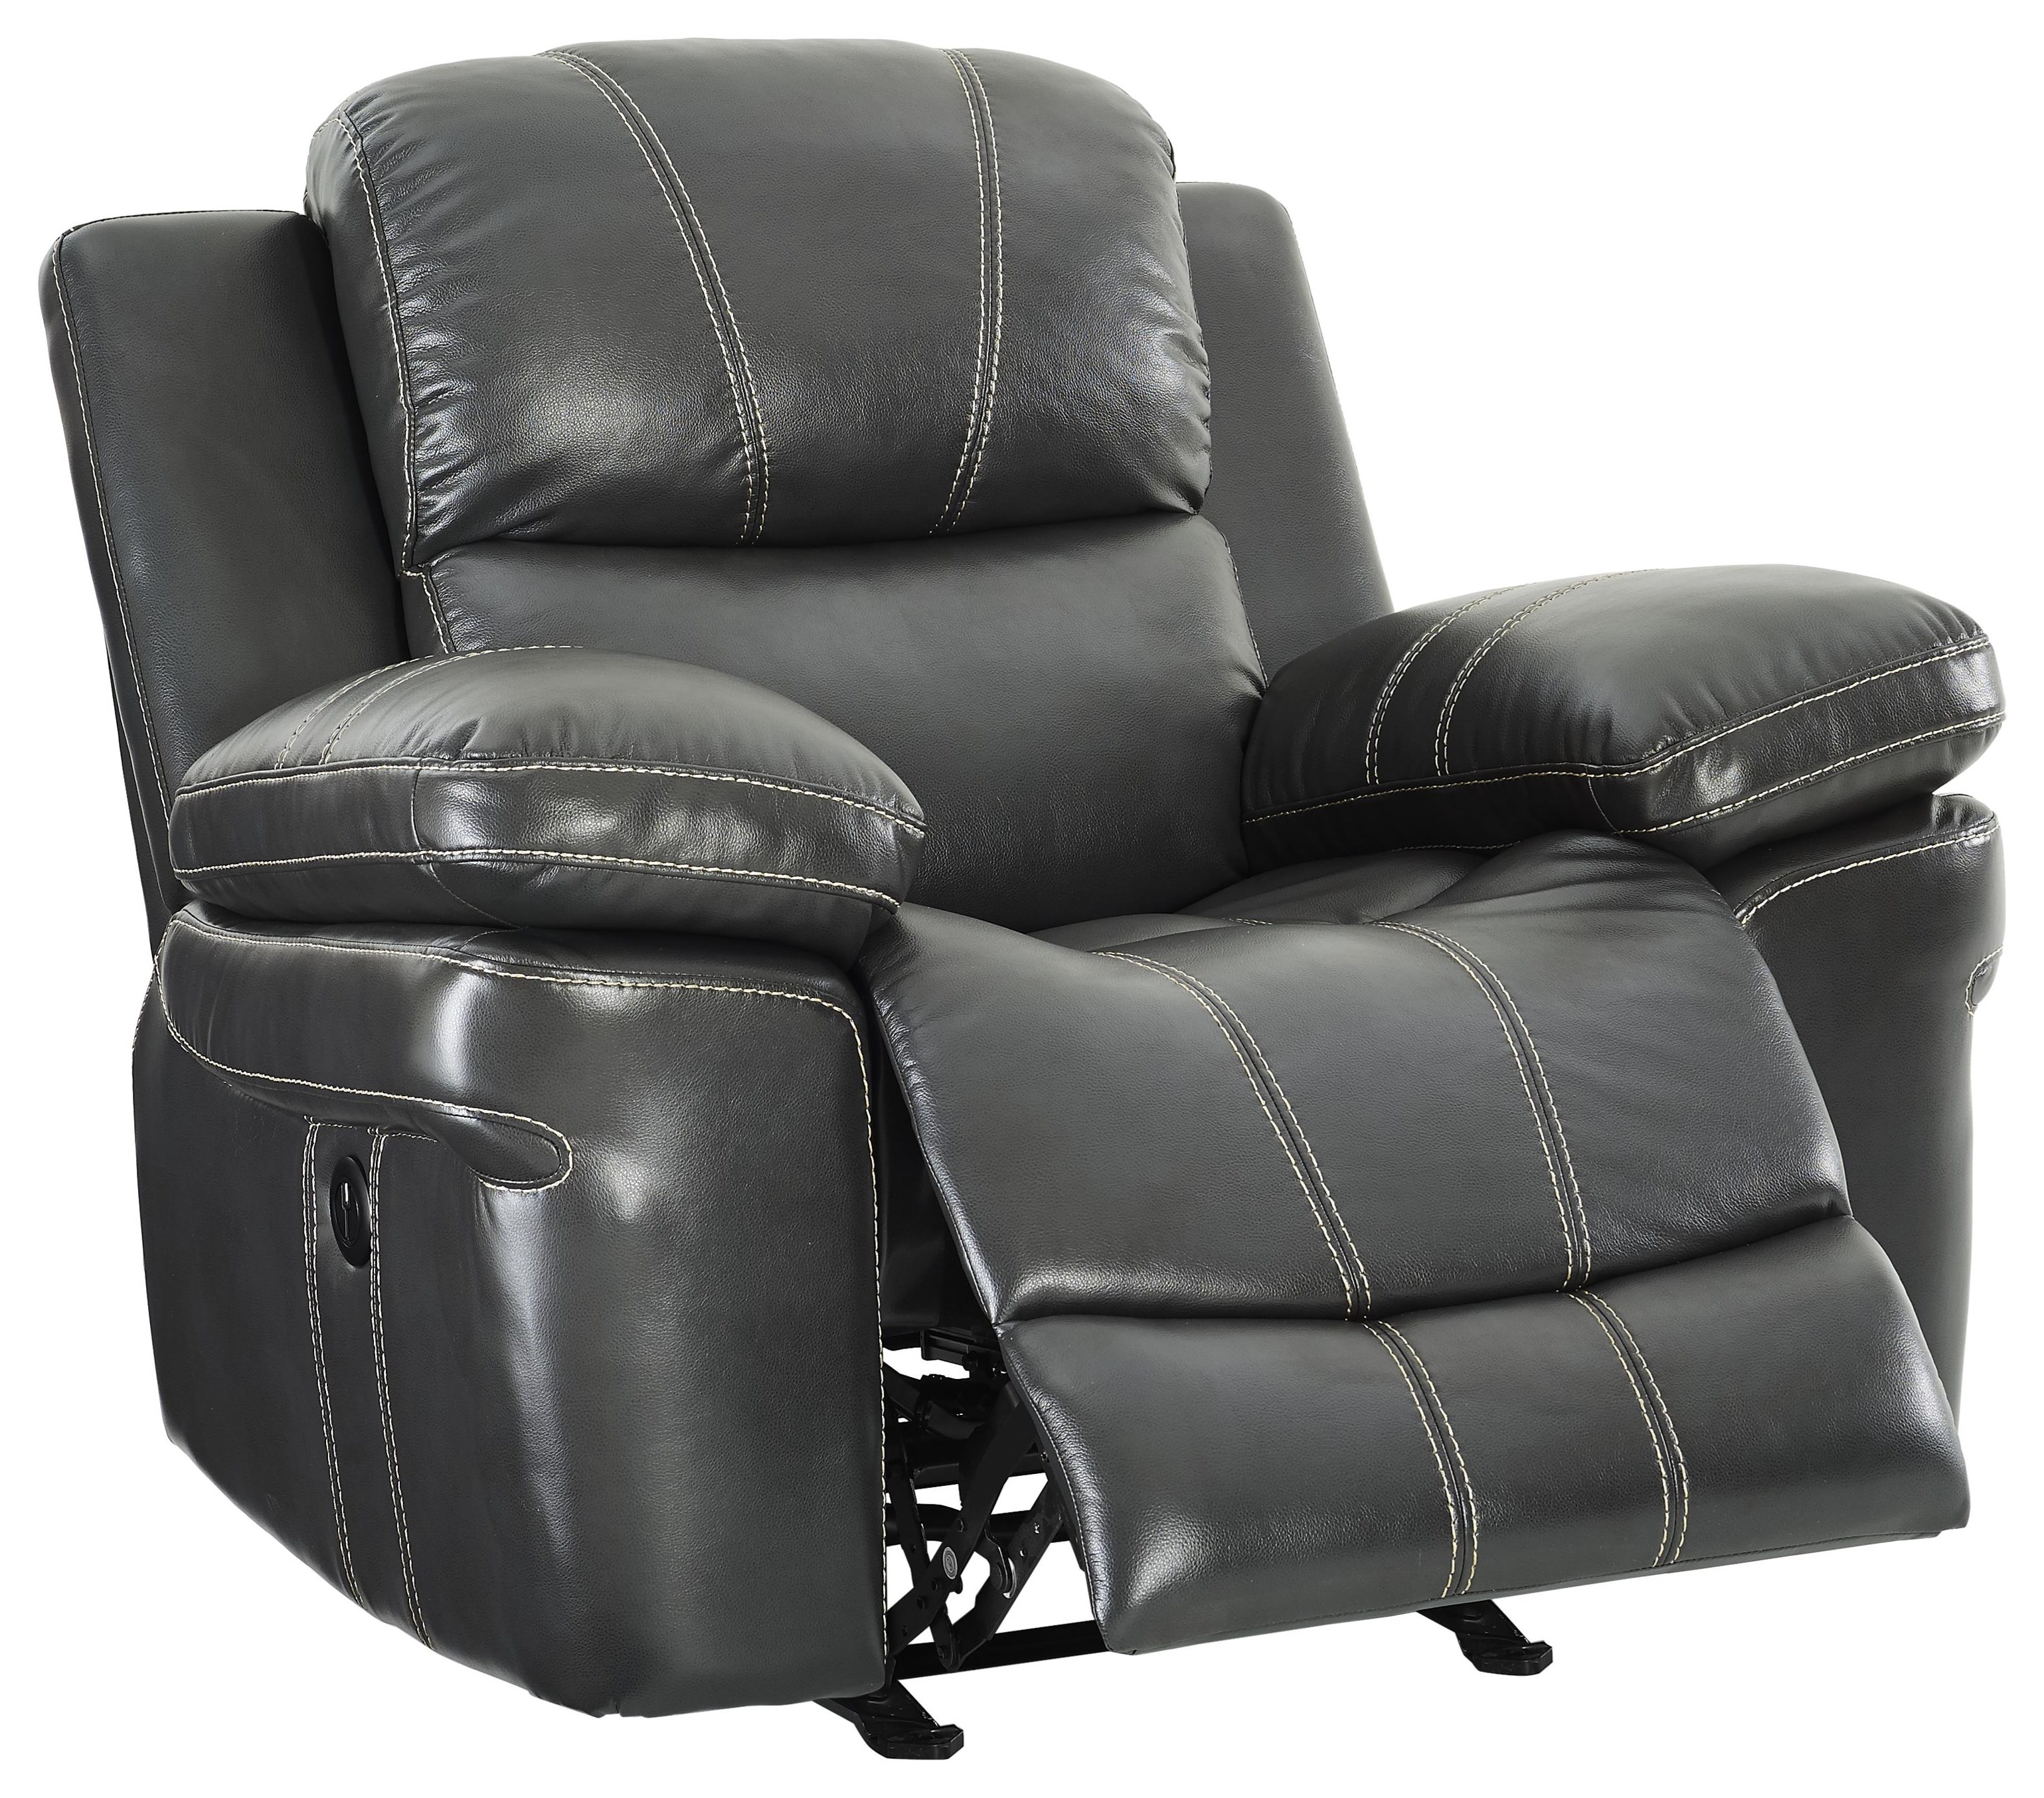 Power Recliner With USB Port